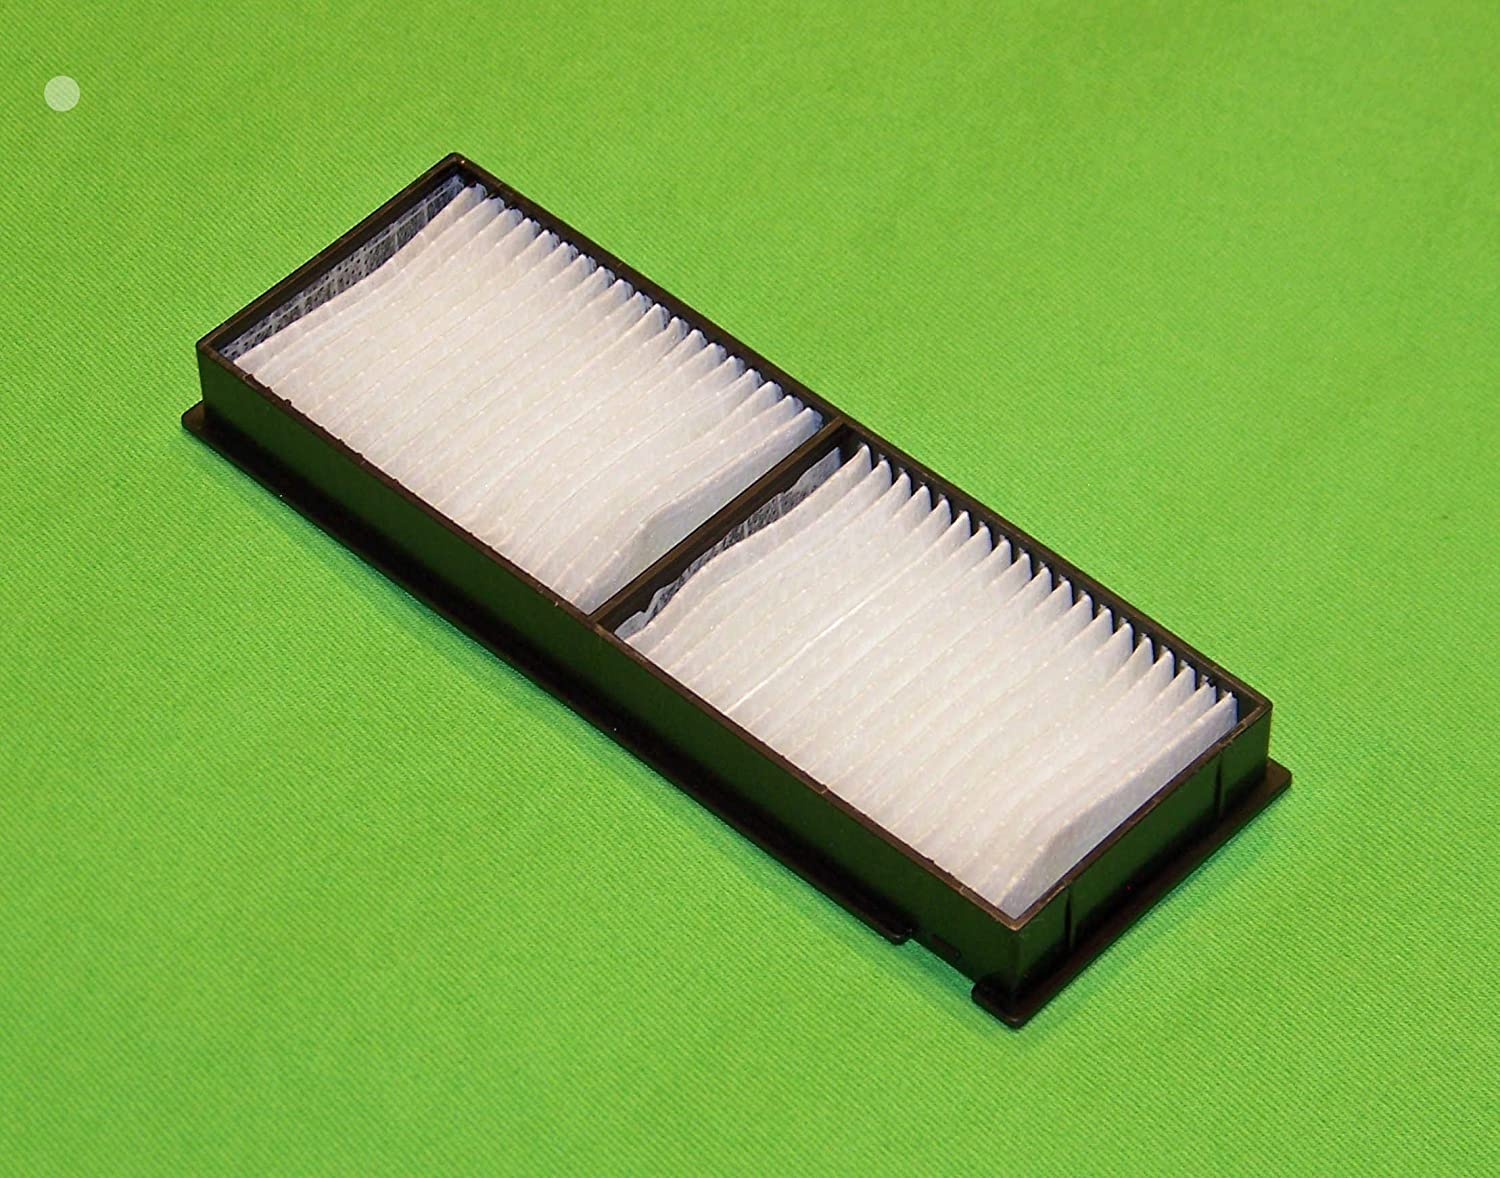 OEM Epson Projector Air Filter for Epson PowerLite Home Cinema 3010+, PowerLite Home Cinema 3020+